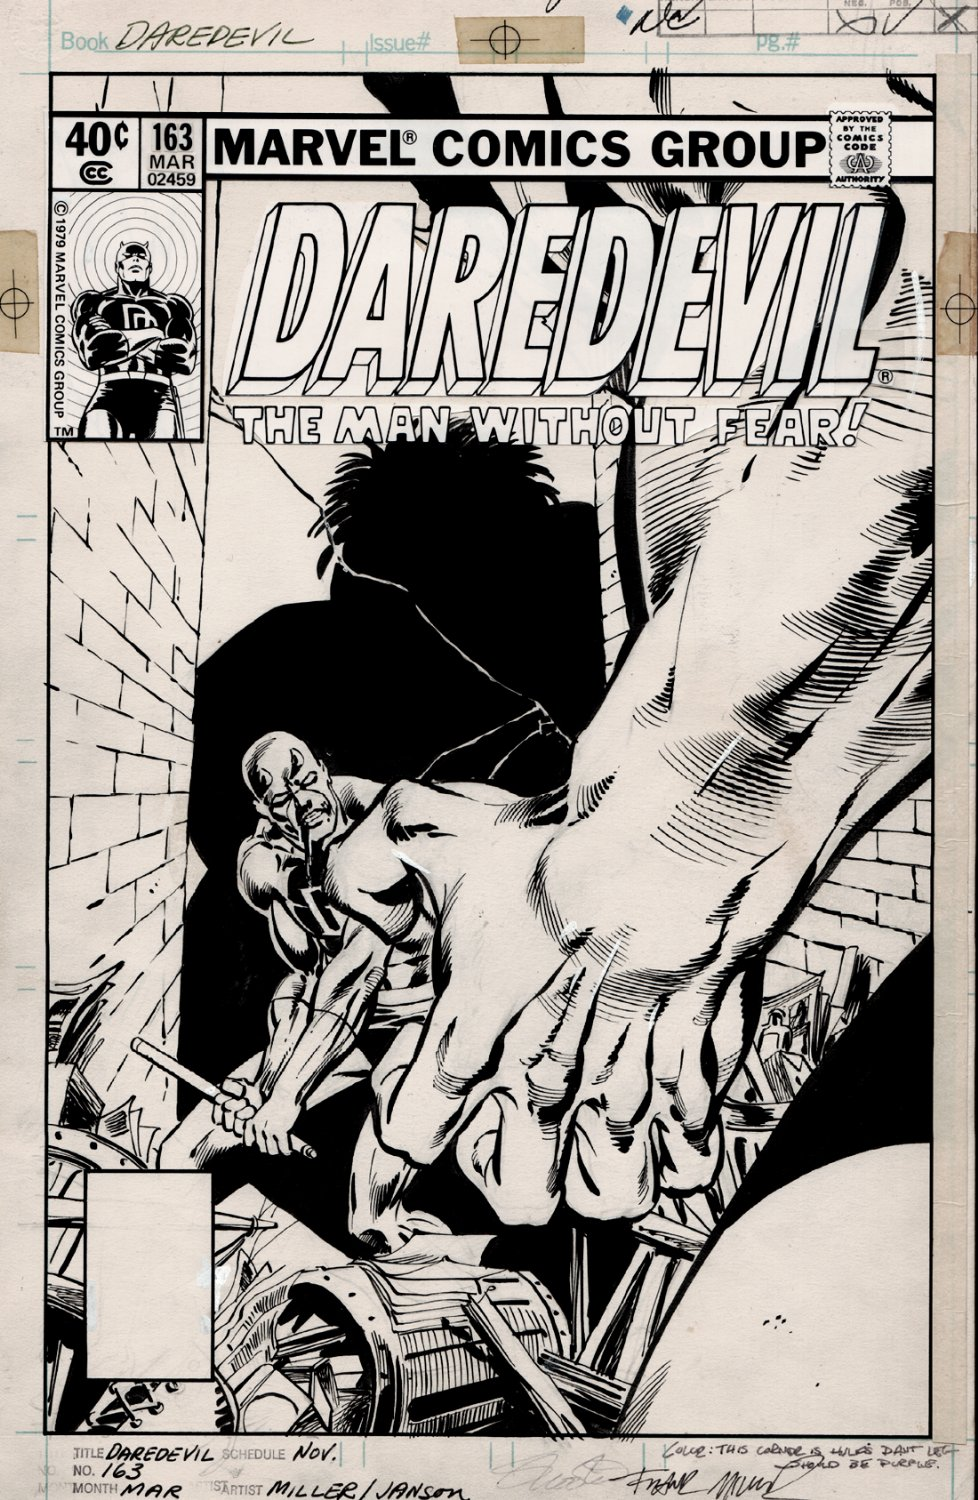 Daredevil #163 Cover (DAREDEVIL VS. THE INCREDIBLE HULK!) 1980